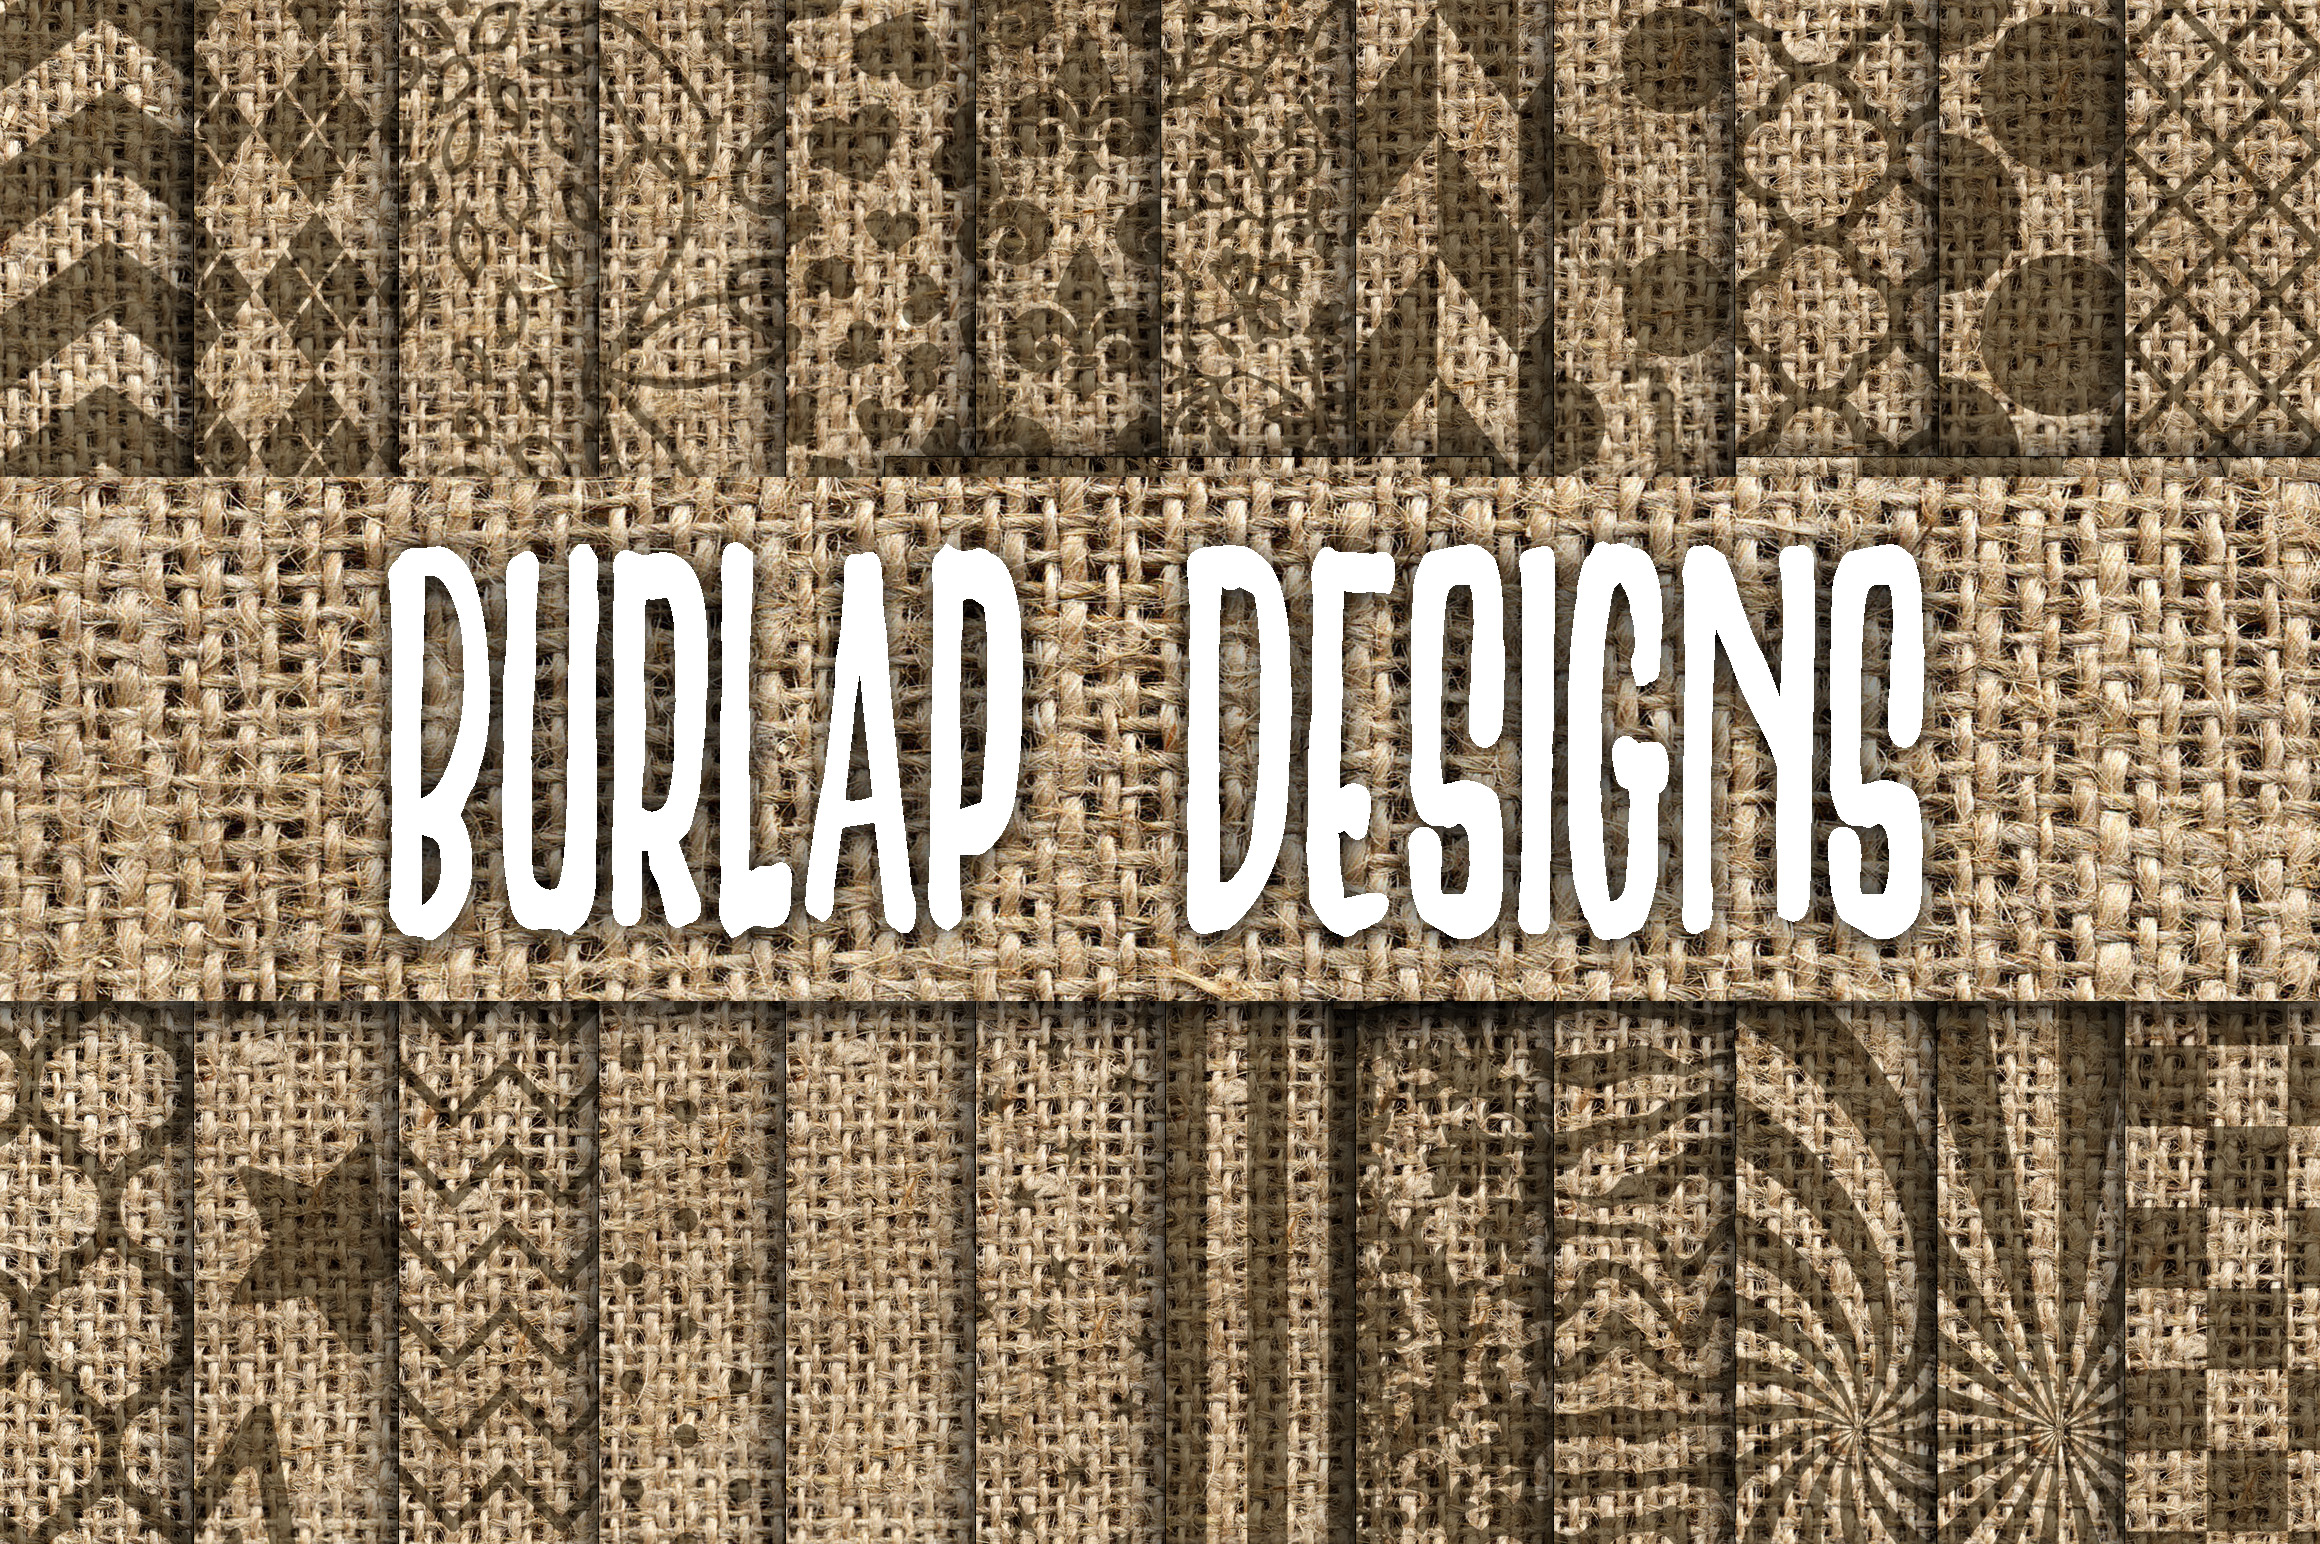 burlap designs digital paper textures graphic by